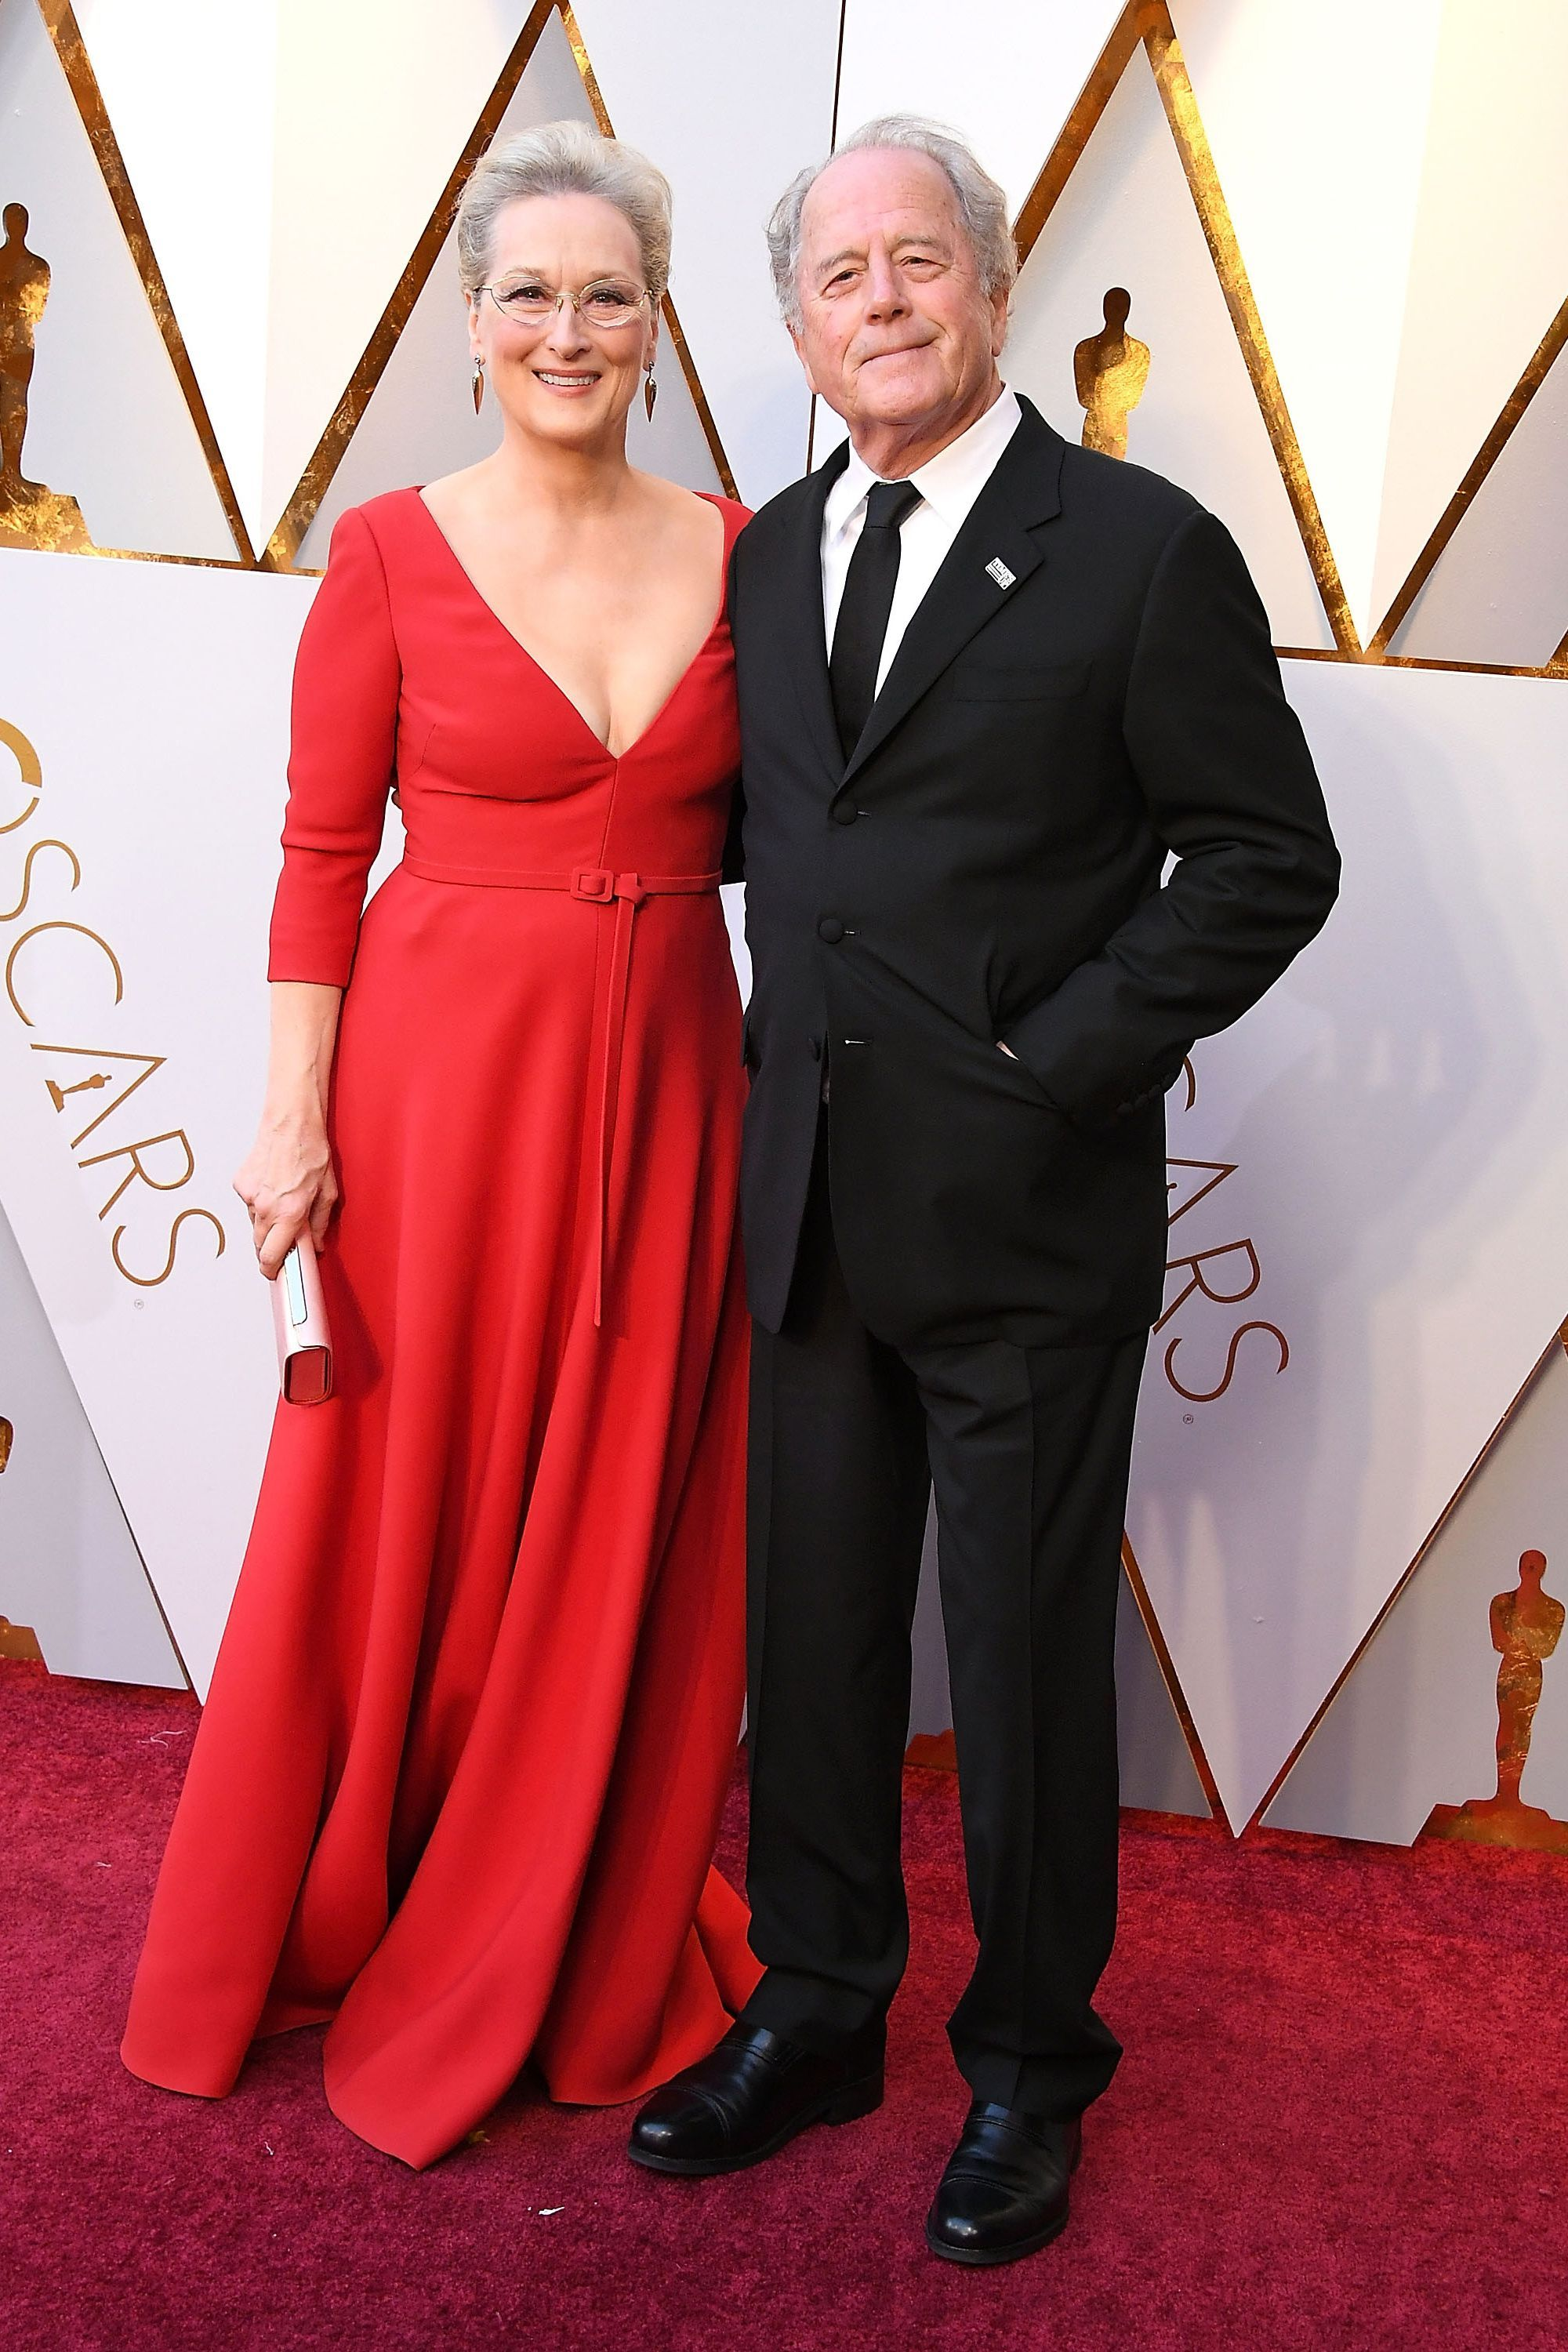 """<p>The iconic actress has enjoyed an amazing career, all while <u data-redactor-tag=""""u"""" data-tracking-id=""""recirc-text-link"""">having ahappy family with her husband</u> of 40 years, Don Gummer. The couple stays relatively private about their personal life, but <a href=""""https://www.yours.co.uk/features/celebrity/articles/meryl-streep-at-65-the-love-that-changed-her-life"""" target=""""_blank""""><u data-redactor-tag=""""u"""" data-tracking-id=""""recirc-text-link"""">Streep has said</u></a> that the secret to a strong marriage is 'goodwill and a willingness to bend – and to shut up every once in a while'. Words to live by.</p>"""